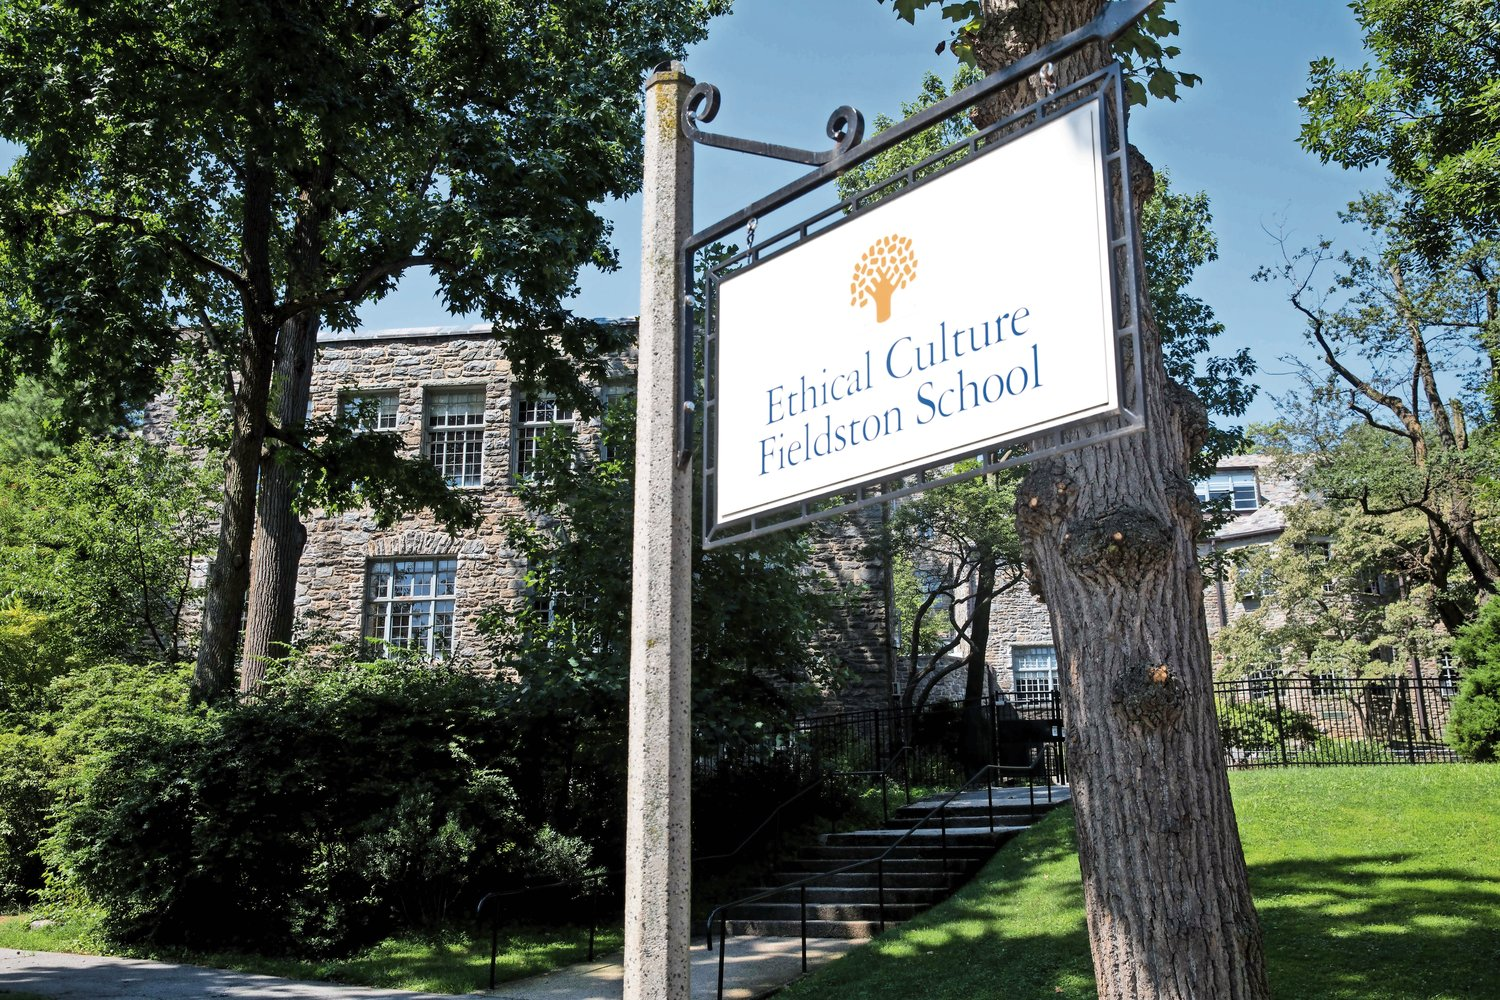 The Ethical Culture Fieldston School in Riverdale.